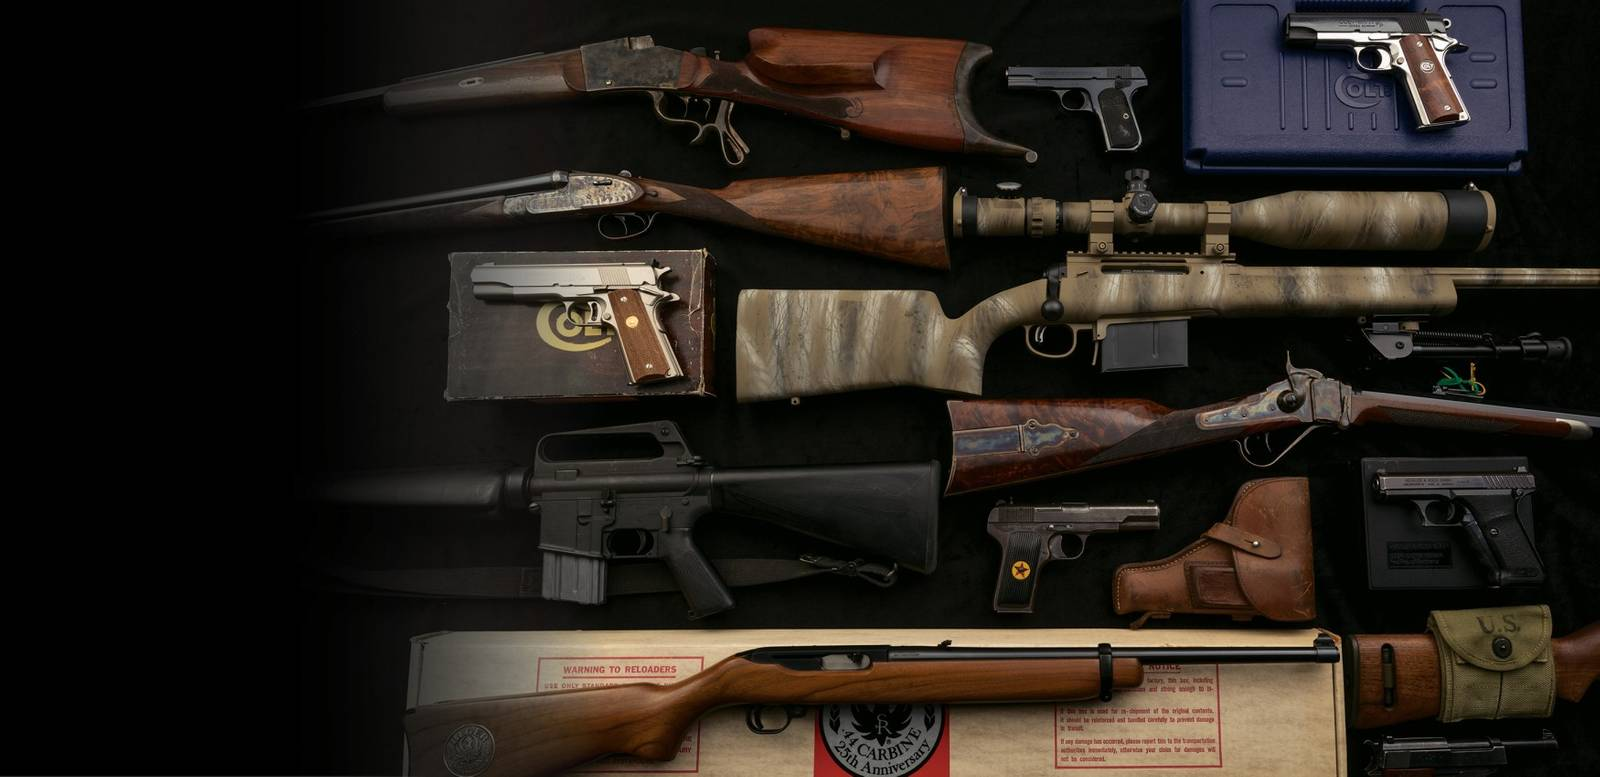 Arms & Accessories Day Firearms Auction